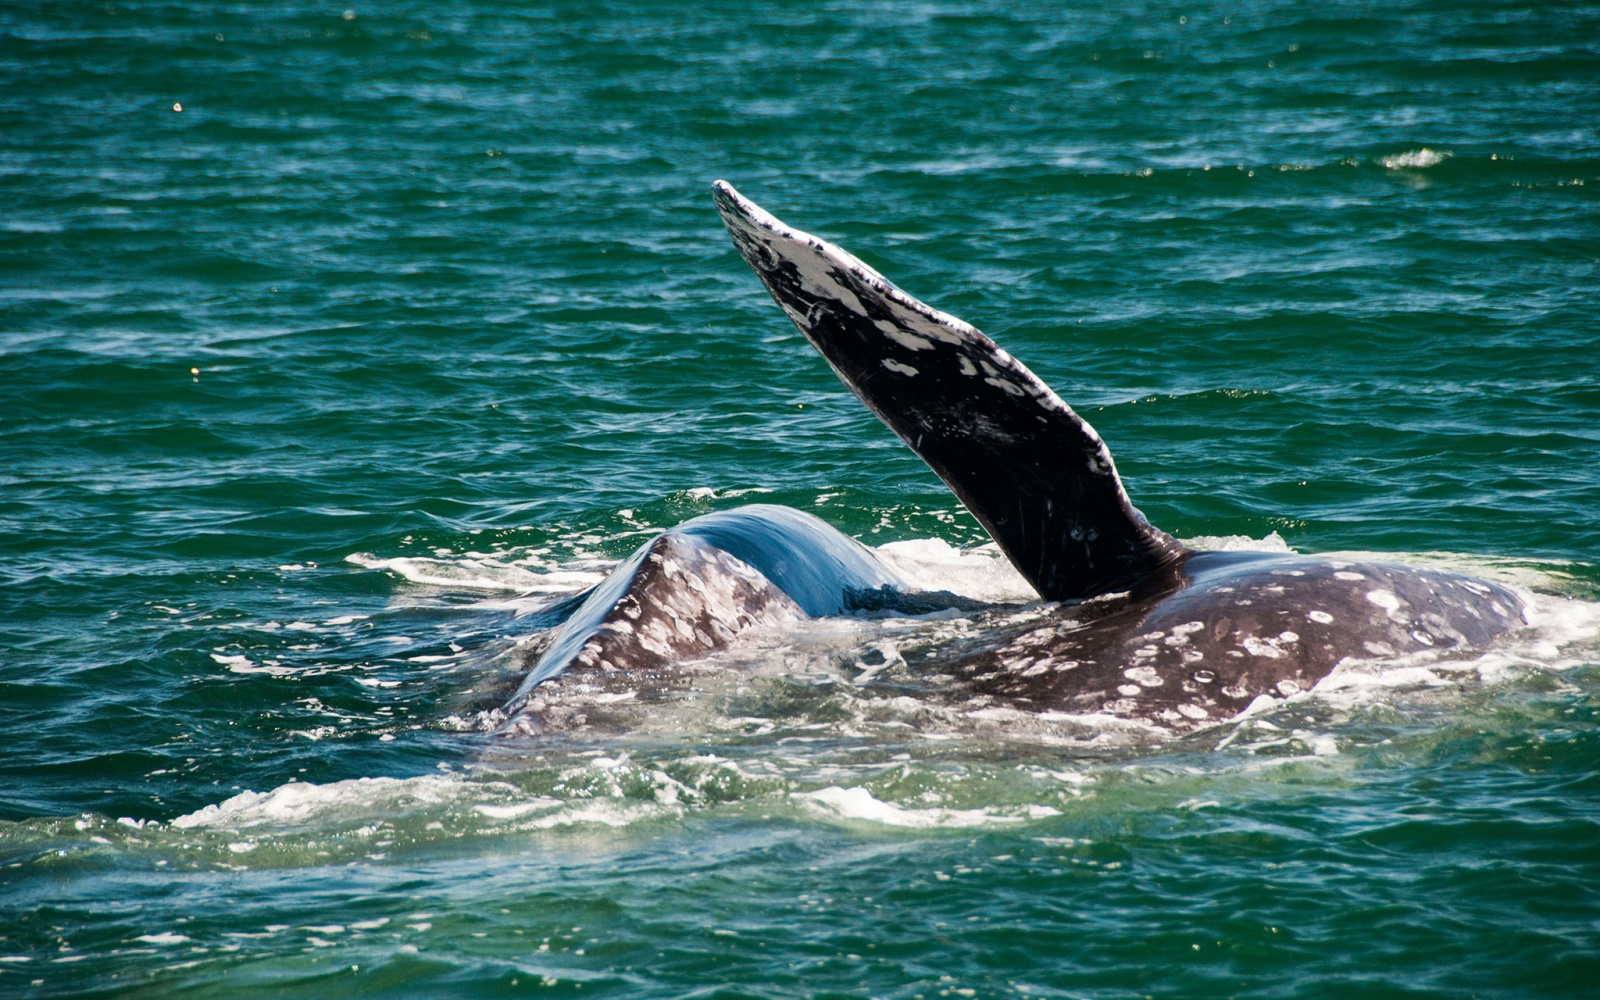 201402-w-spring-weekend-getaway-ideas-gray-whales-california